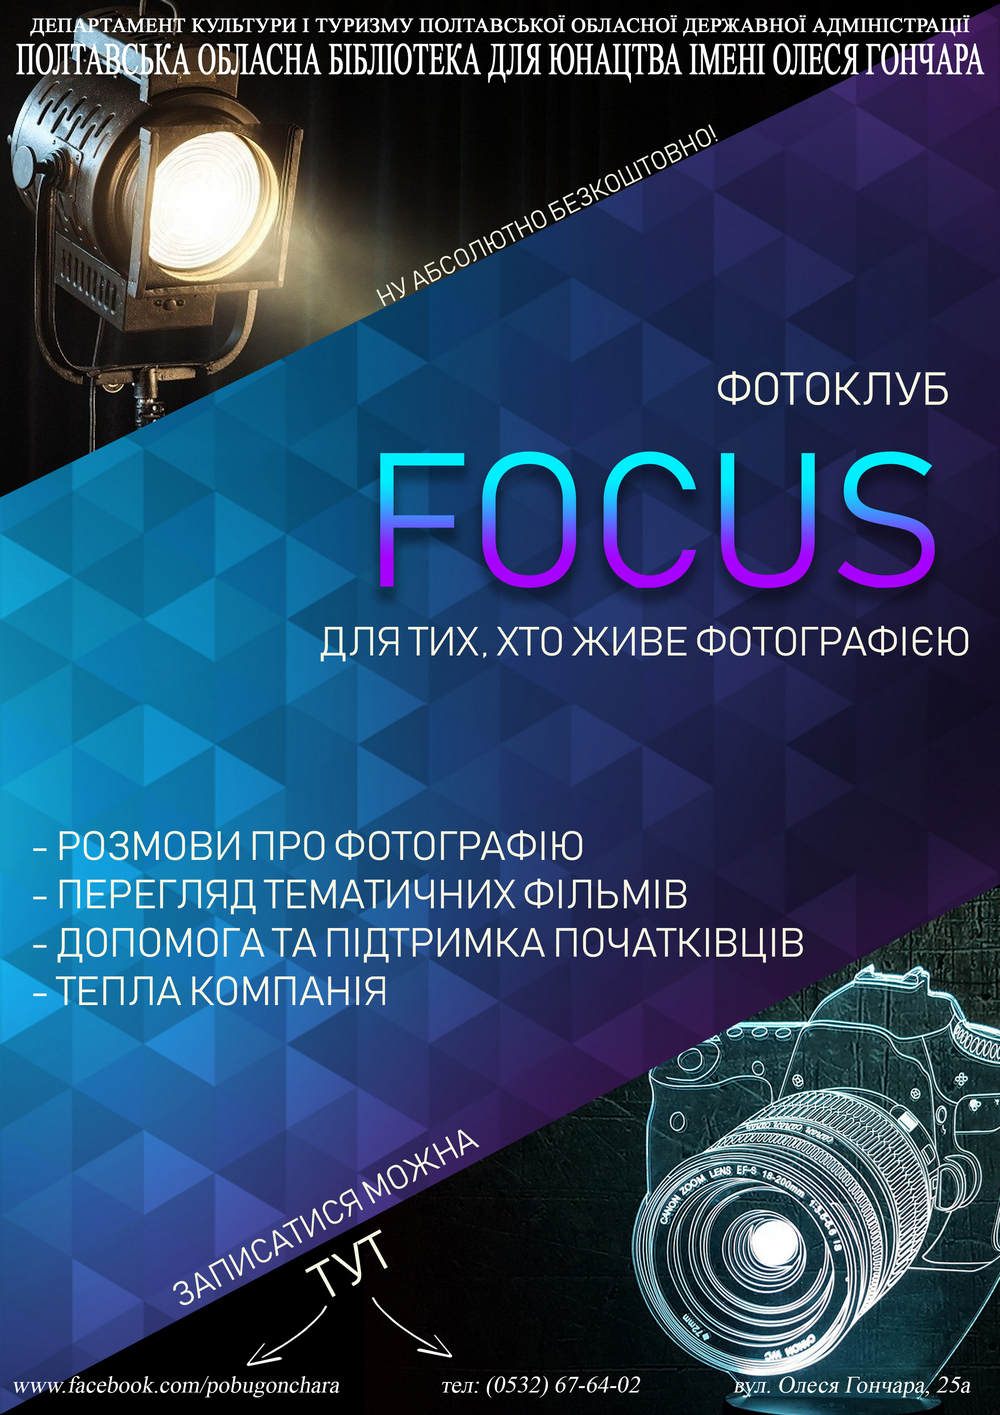 club focus1